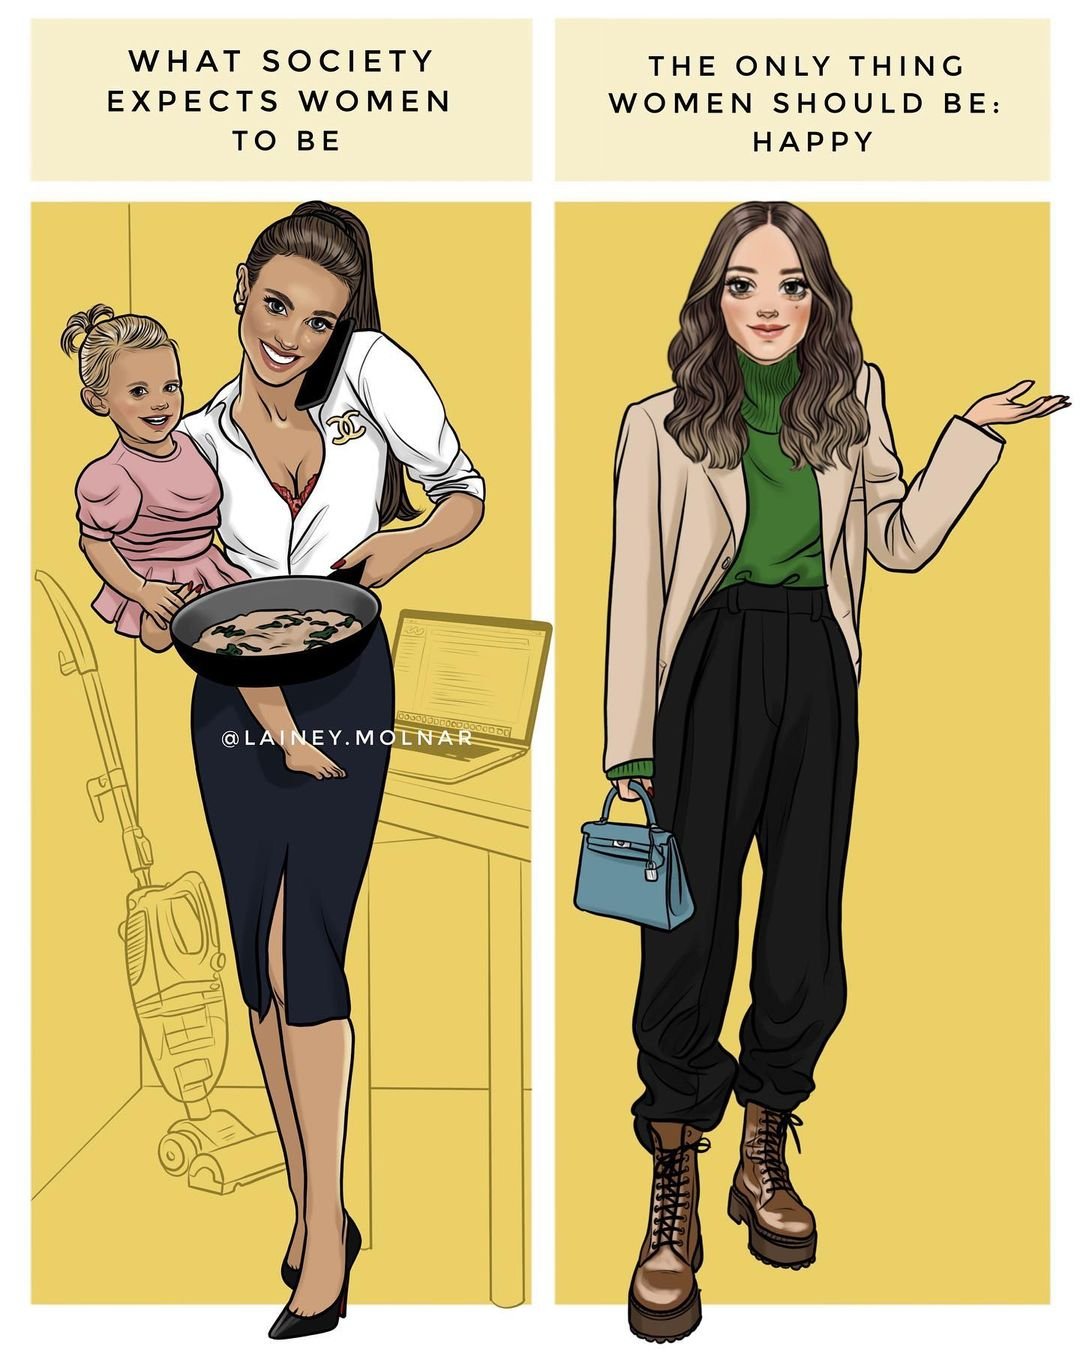 Artist Lainey Molnar creates an illustration about what society expects women to be vs what women should be.